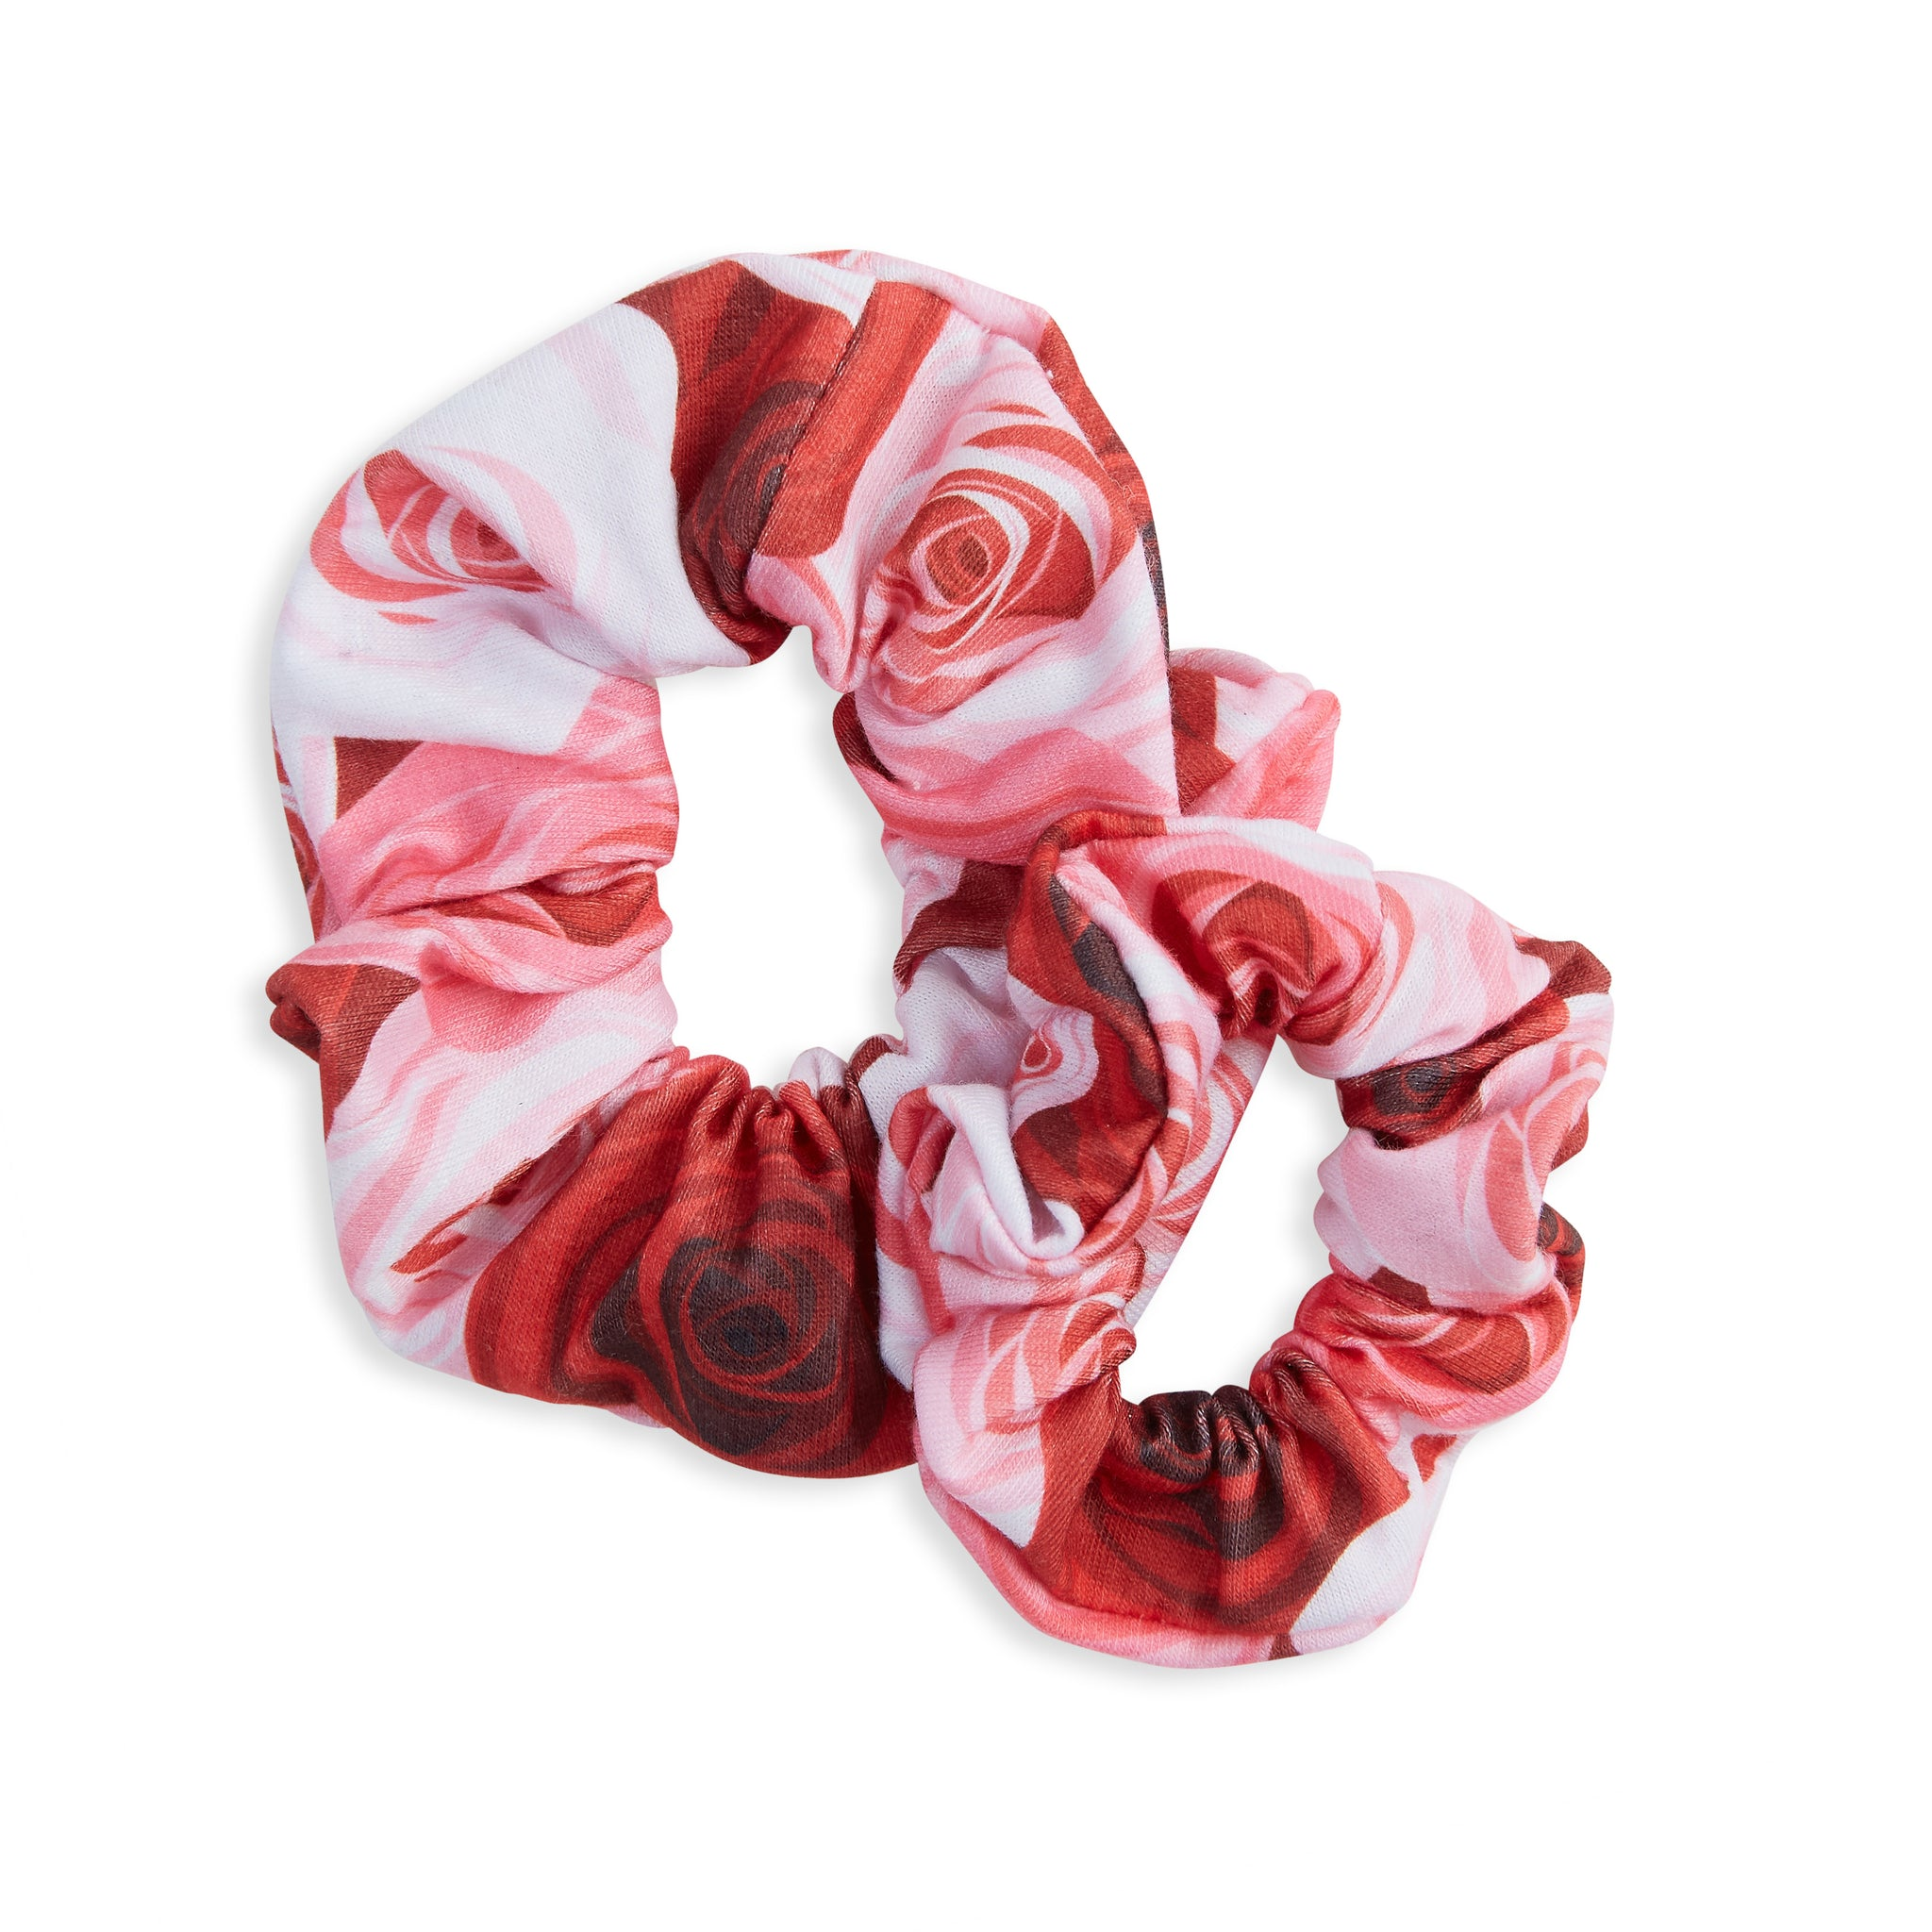 ROSE scrunchies - CHILD & ADULT